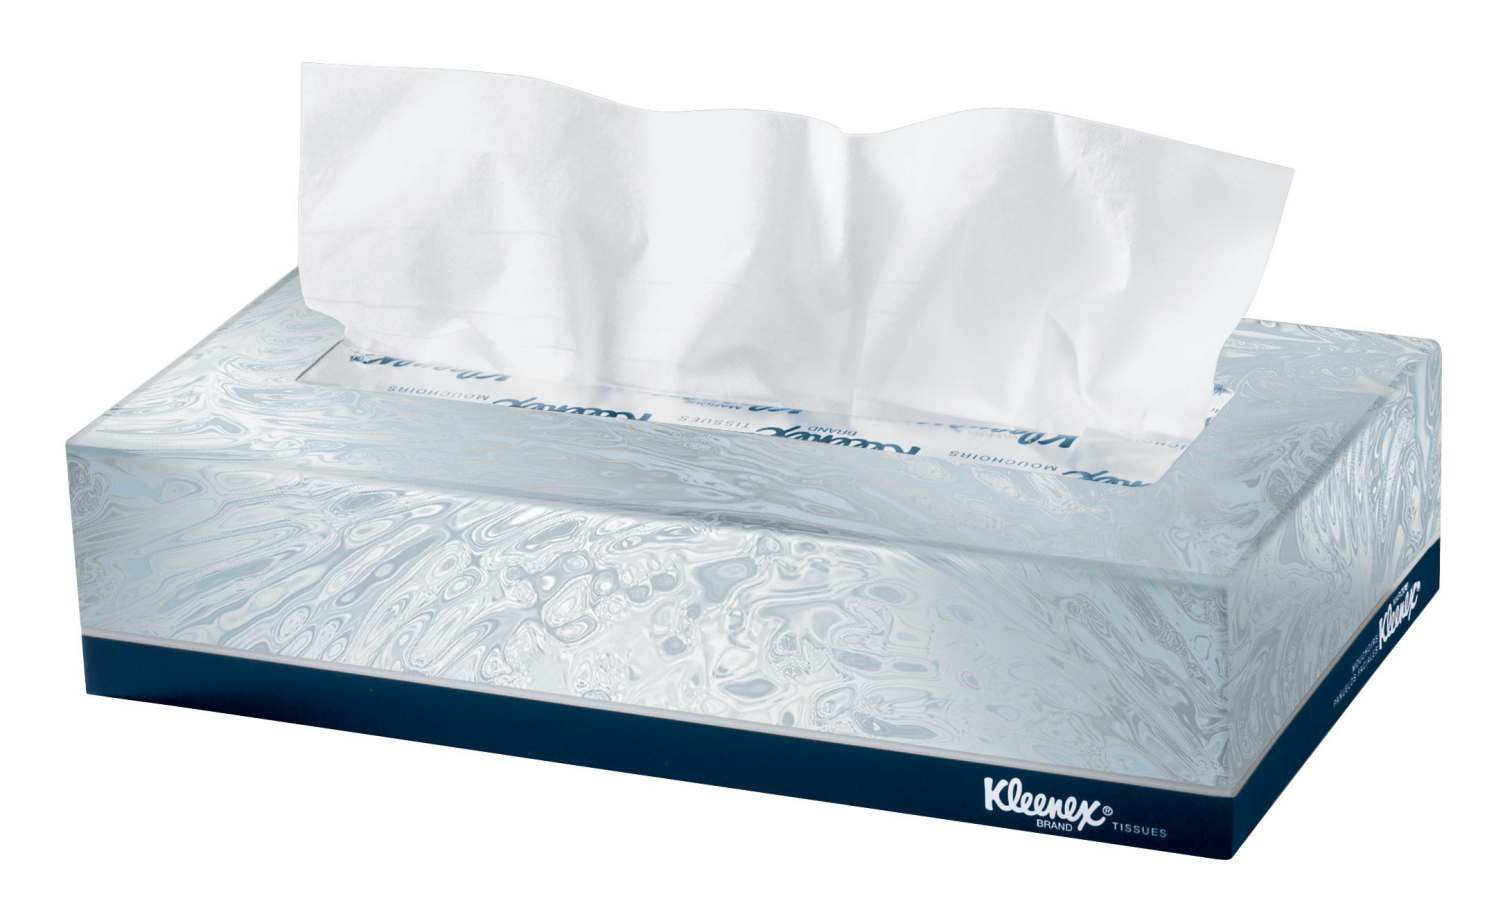 kimberly-clark-kleenex-facial-tissue-tissues-white-box-of-48-model-21606